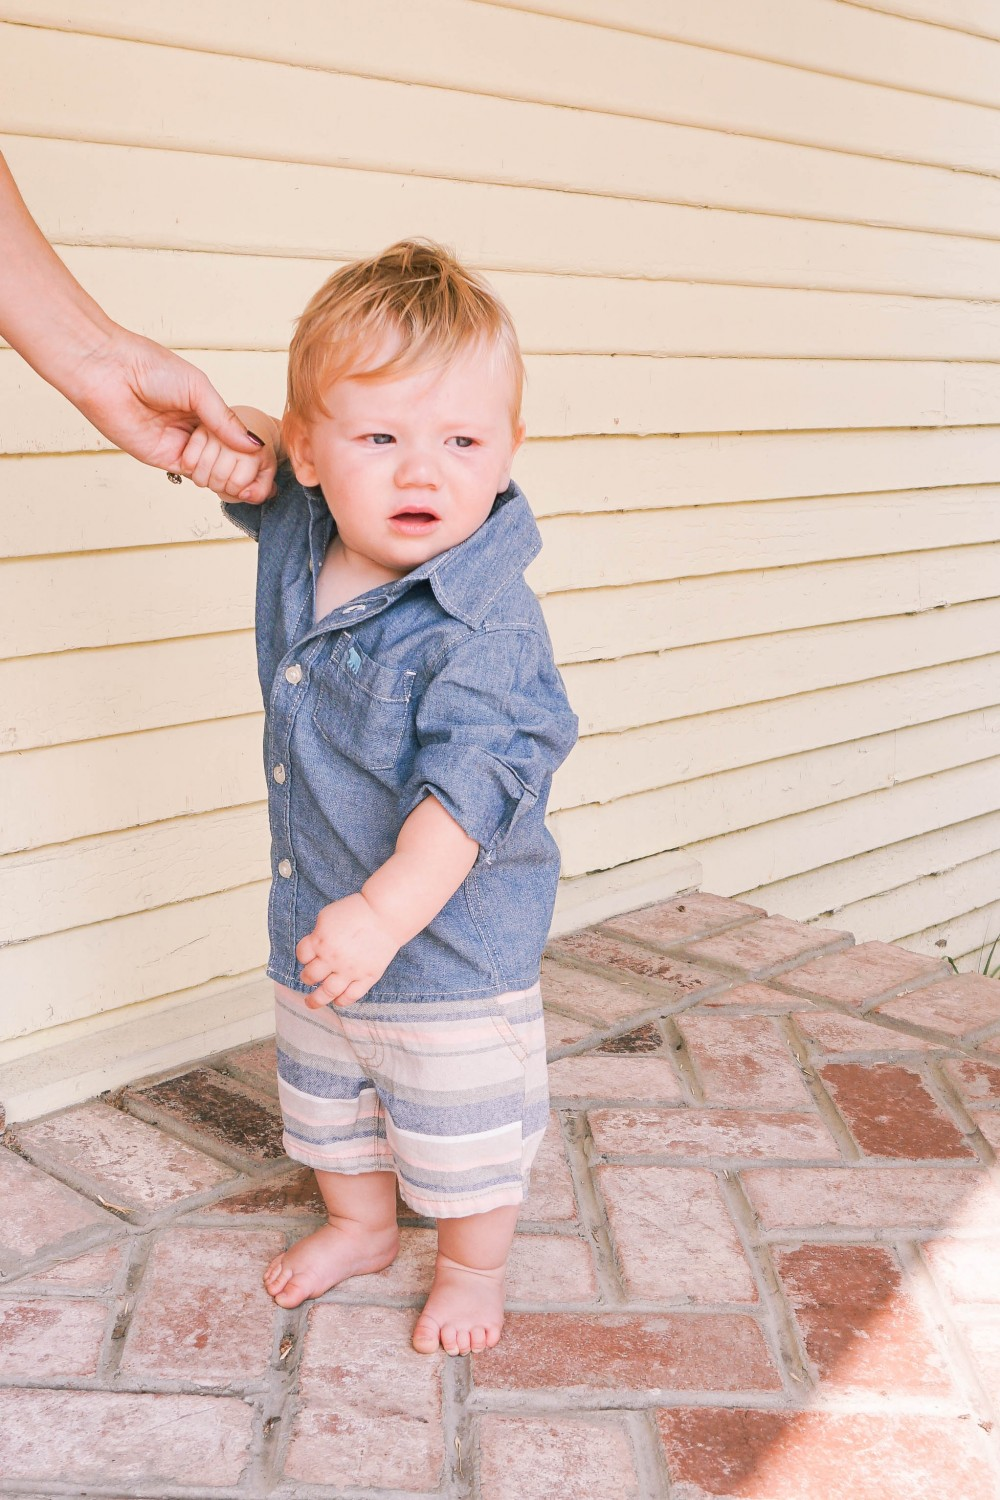 Carter's Baby-JCPenney-Baby Boy Clothes Under $30-Fall Fashion for Baby-Baby Clothing Sale-Have Need Want 15